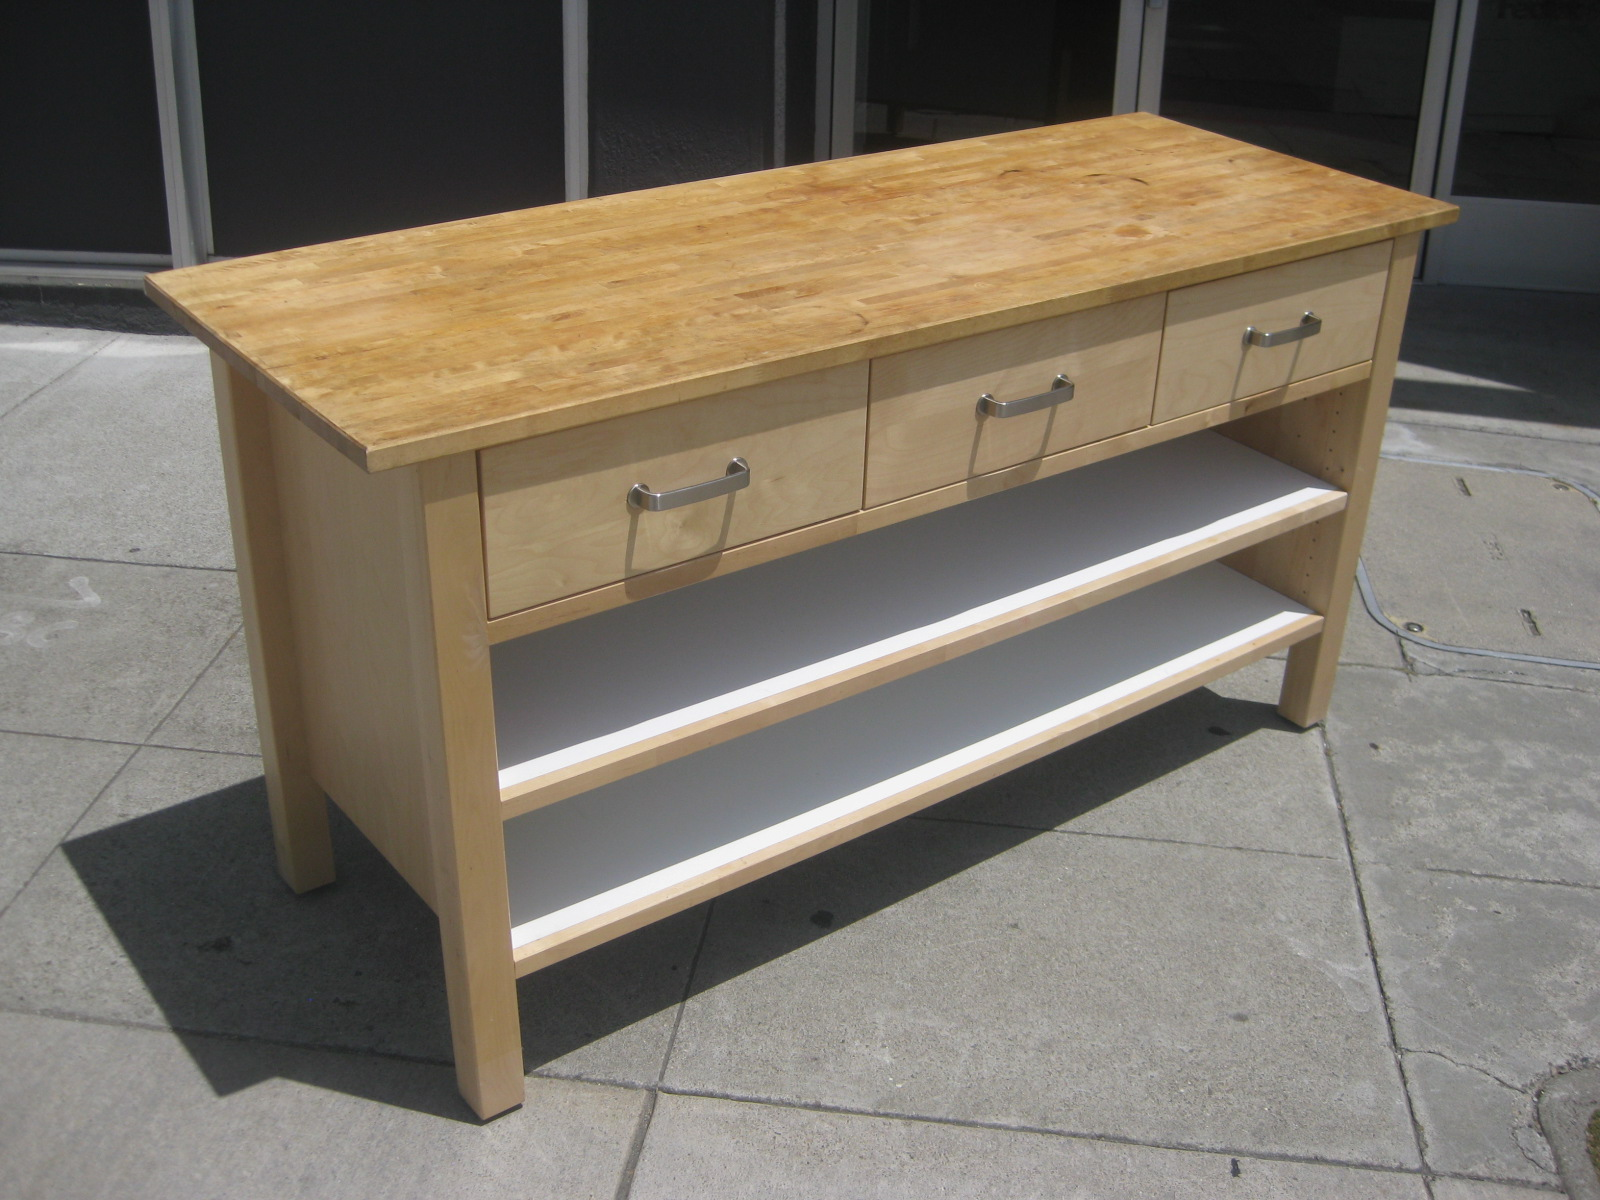 UHURU FURNITURE & COLLECTIBLES SOLD Ikea Butcher Block Counter